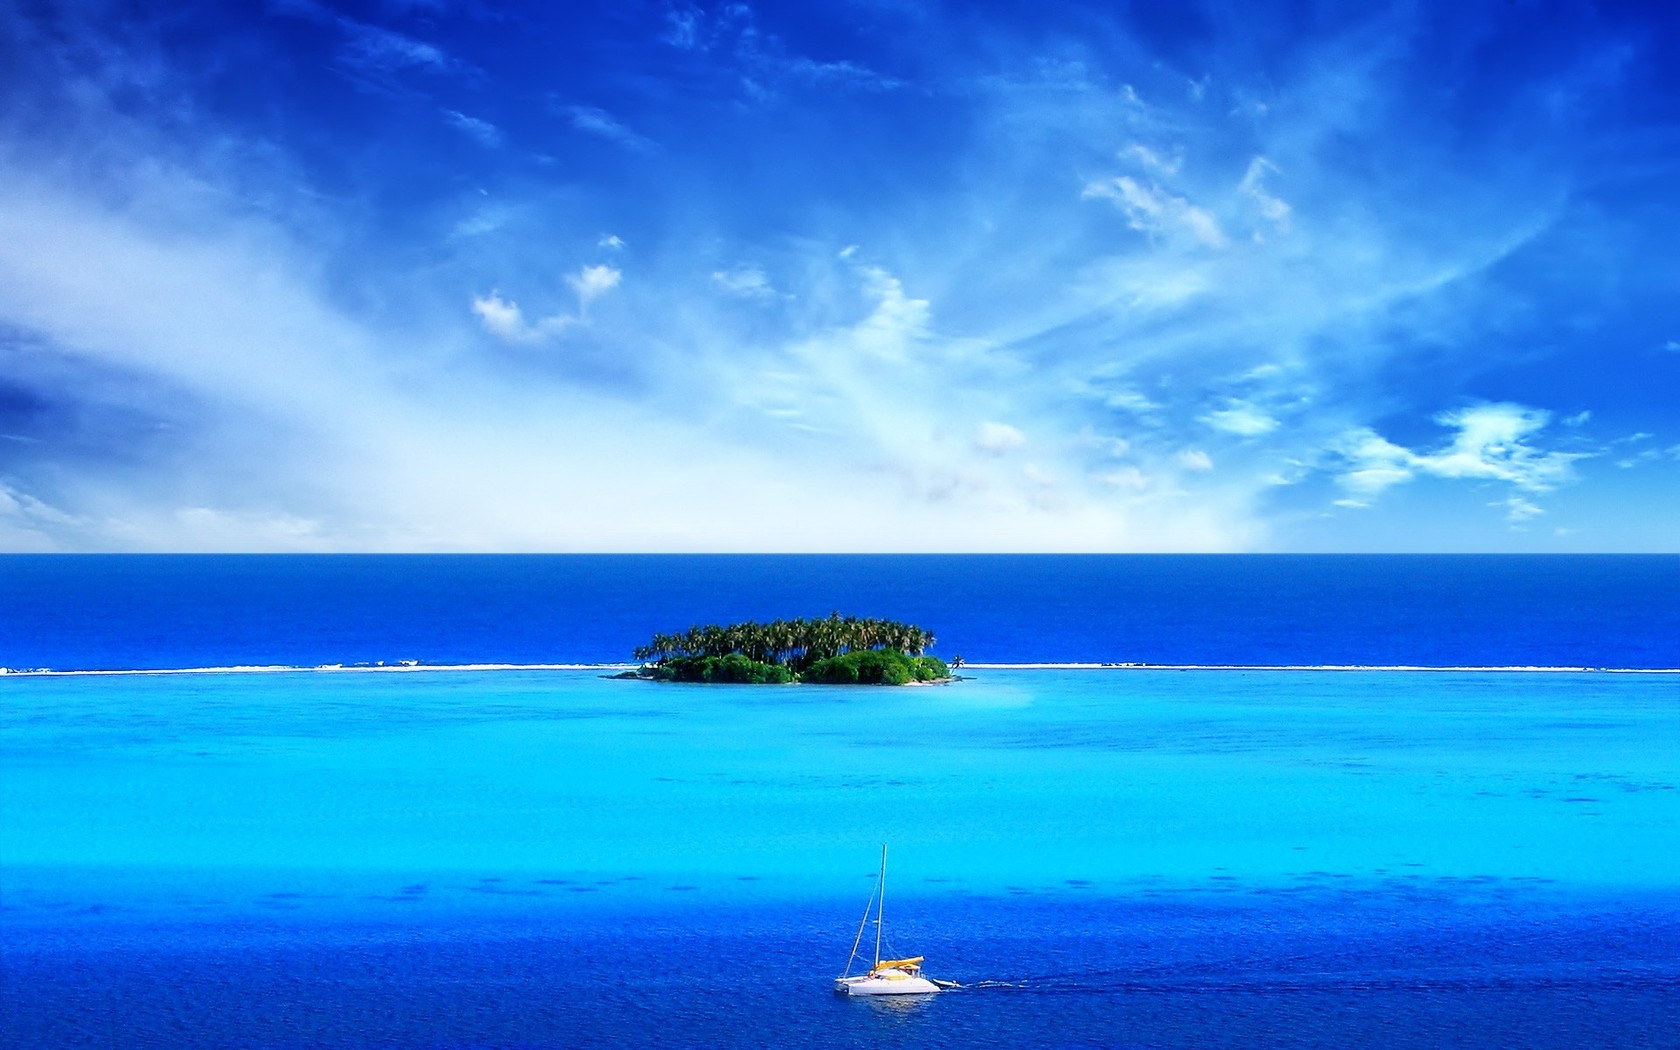 Sailing around the tropical island wallpaper 15281 1680x1050